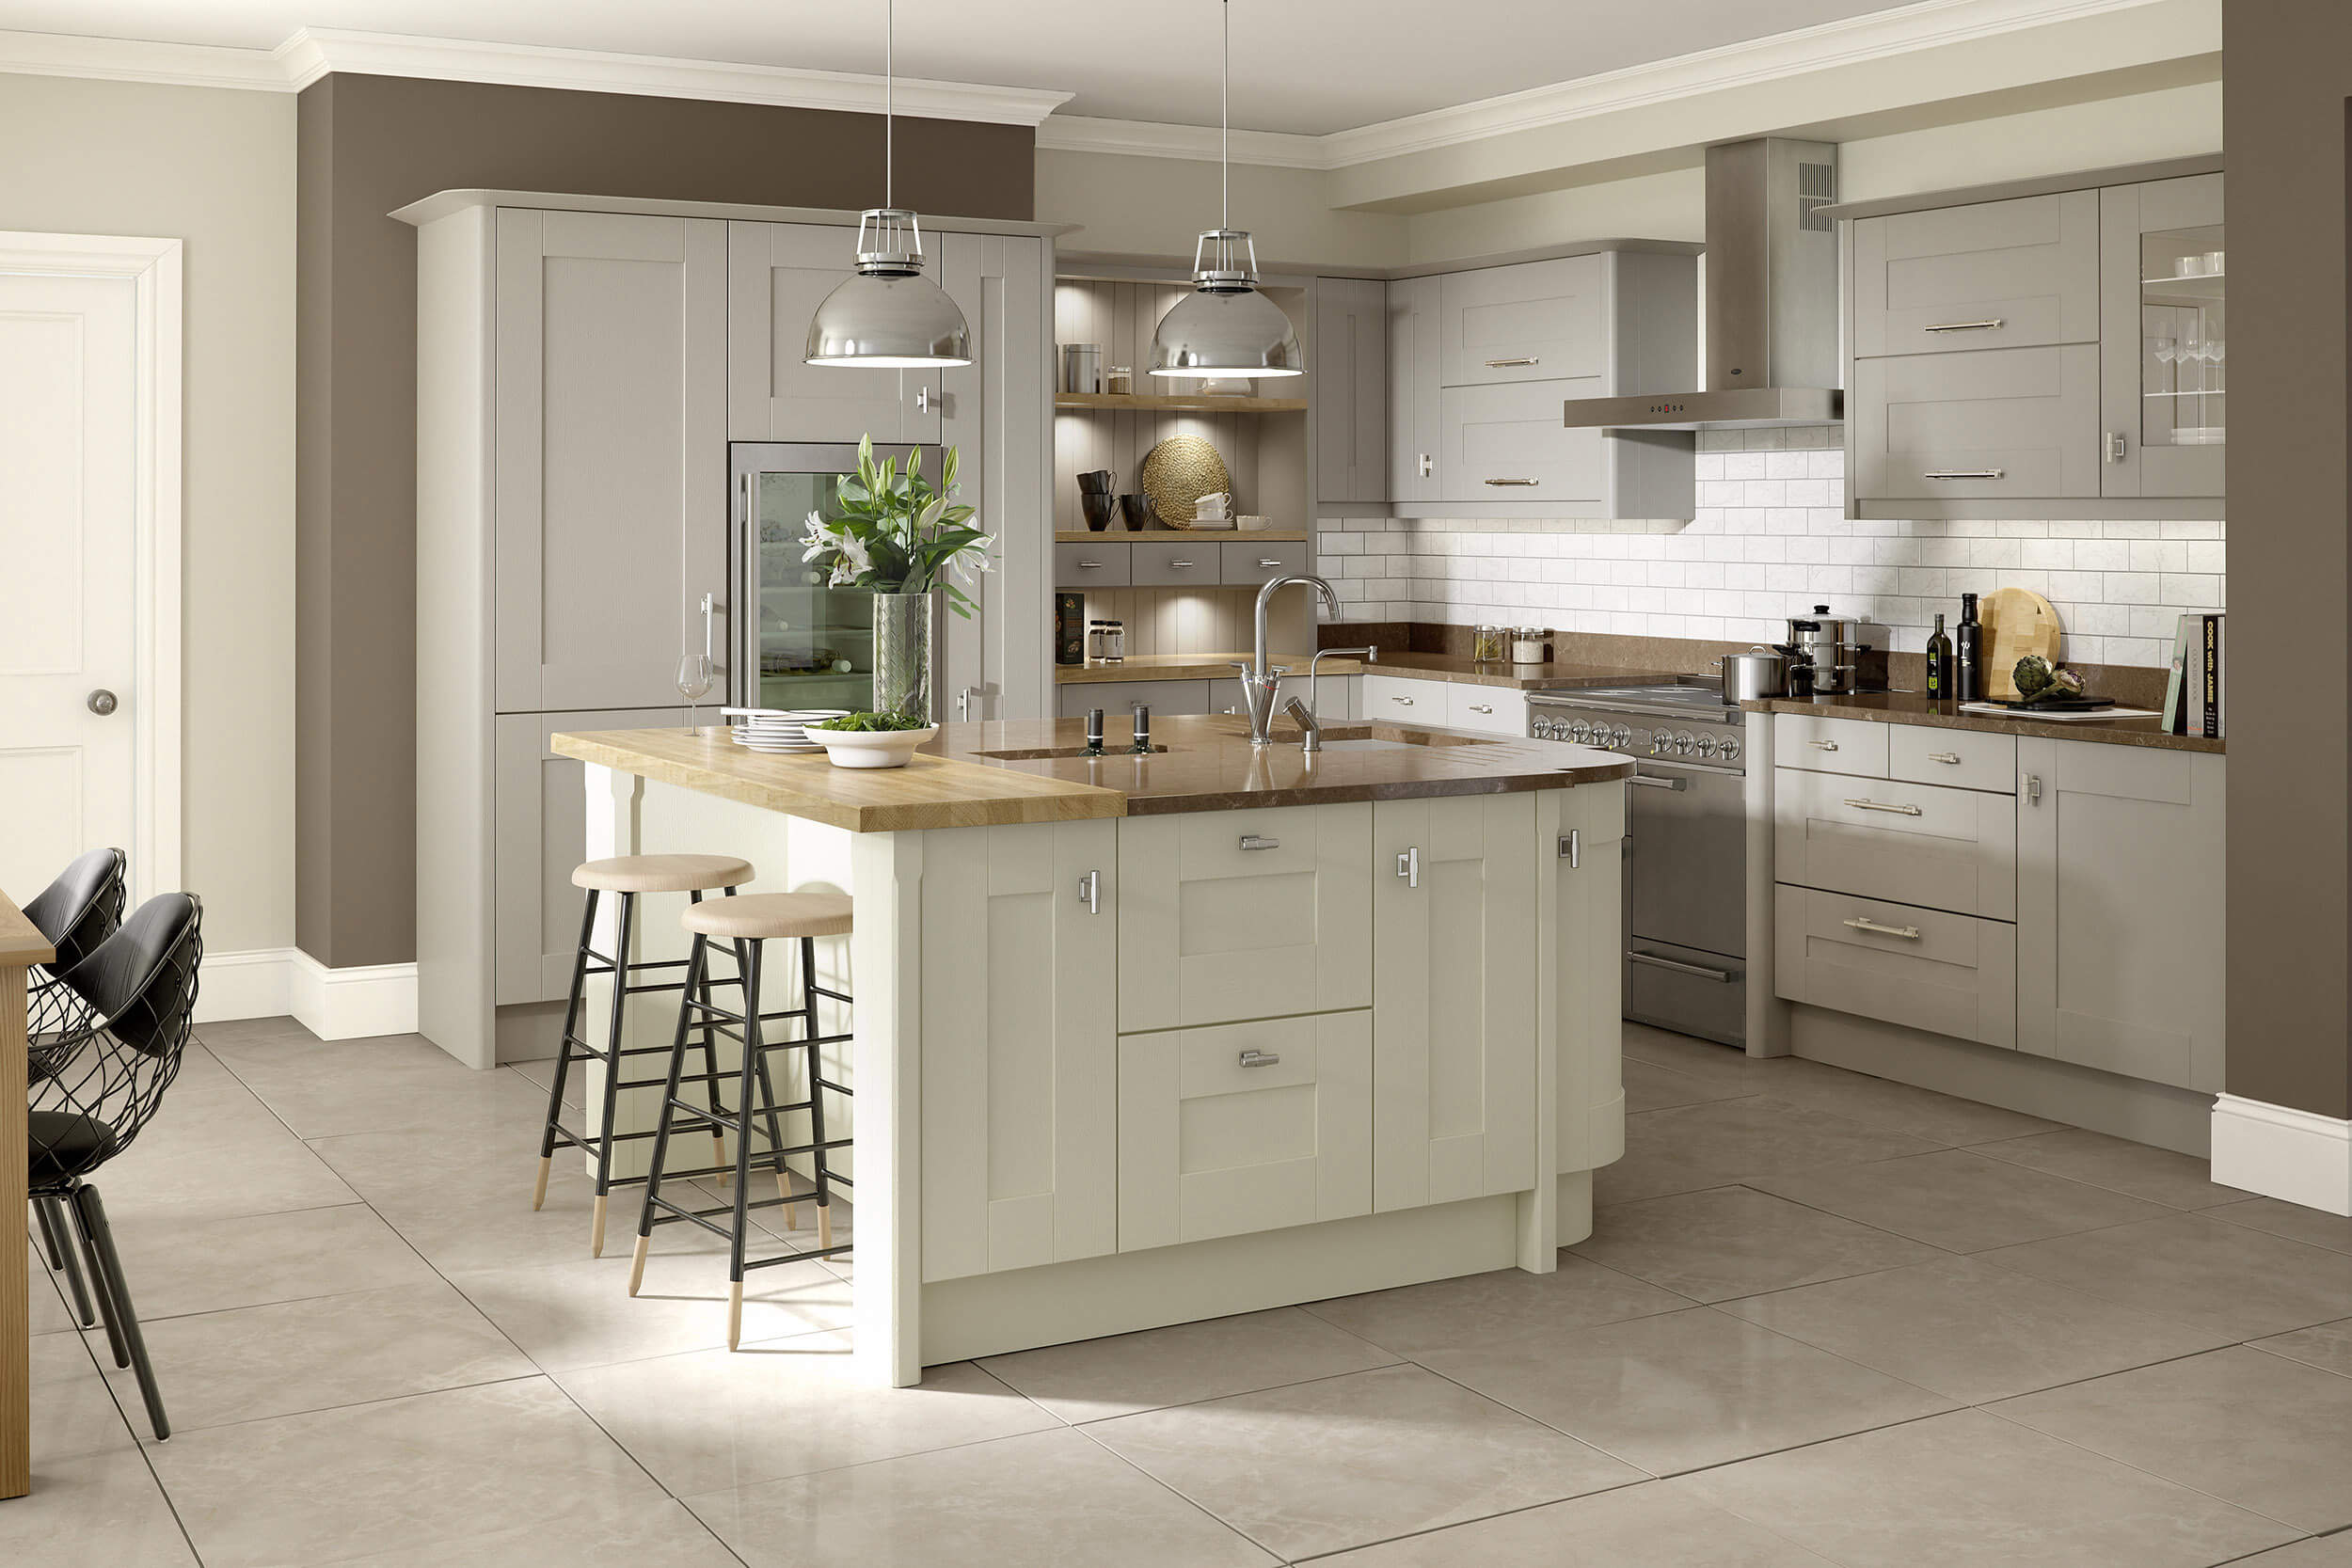 Alchemy-Kitchens-Broadoak-Gallery5